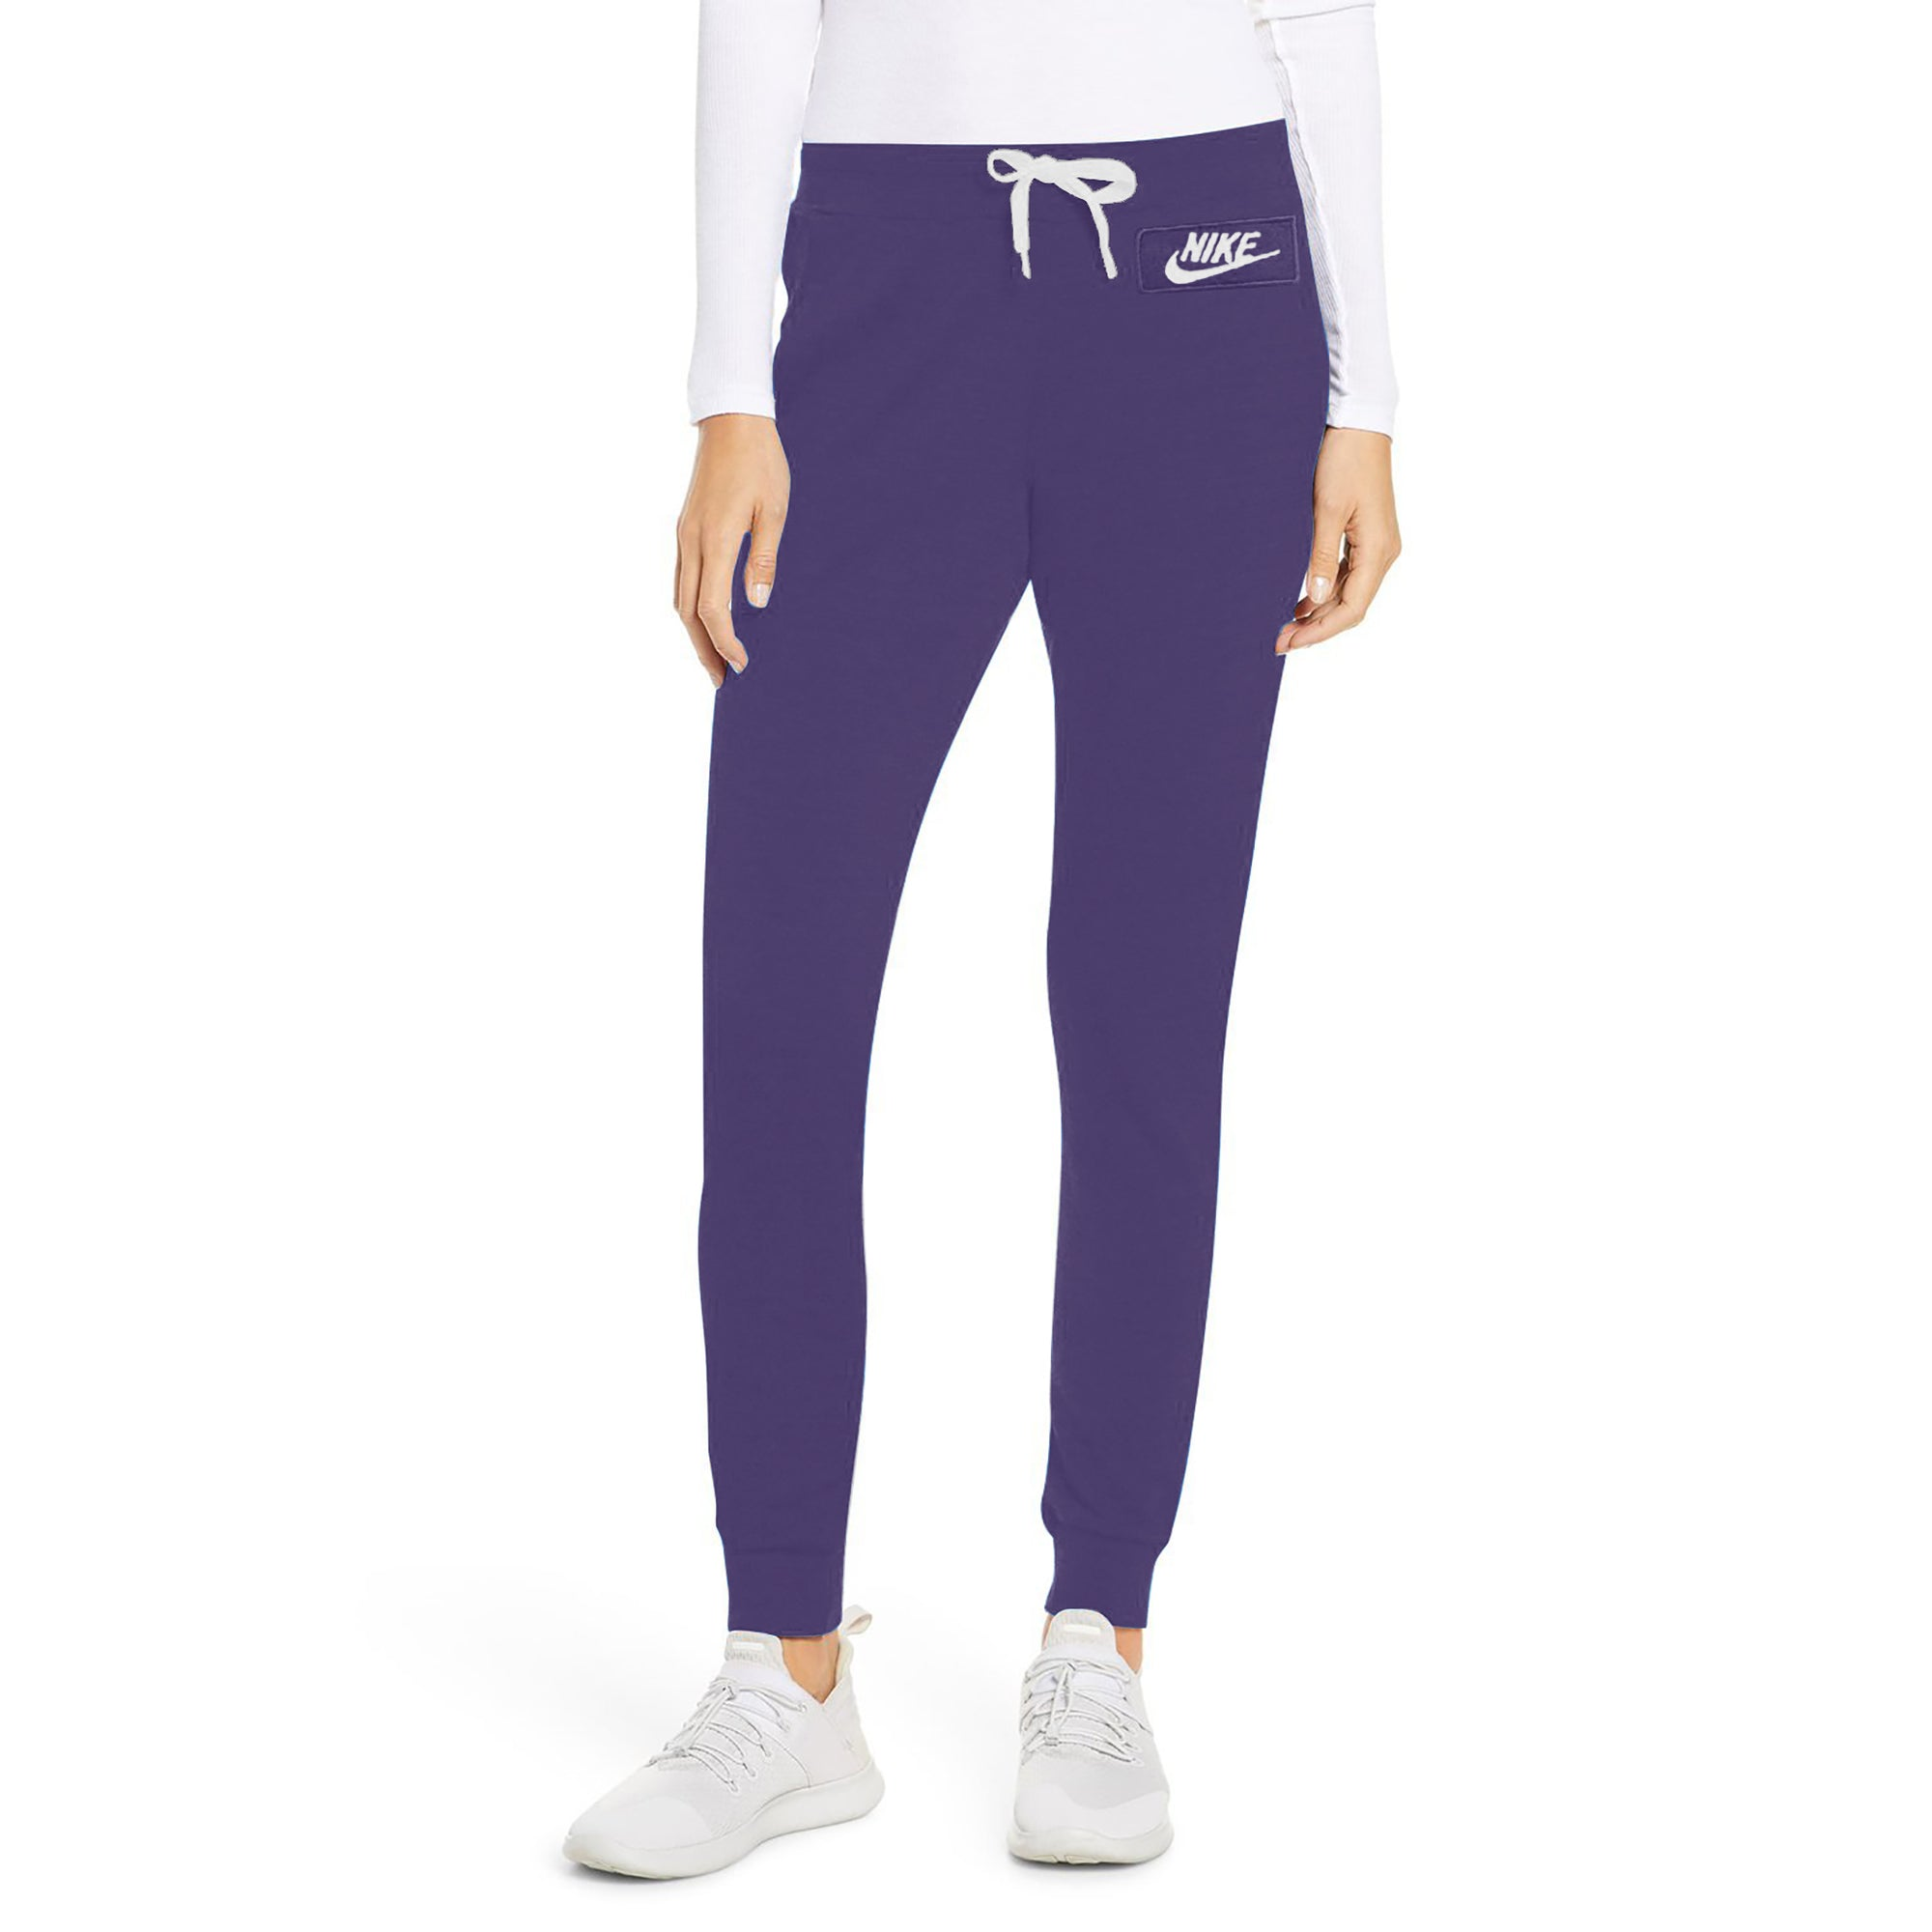 NK Fleece Slim Fit Pant Style Jogging Trouser For Ladies-Dark Purple with White Embroidery-SP4321